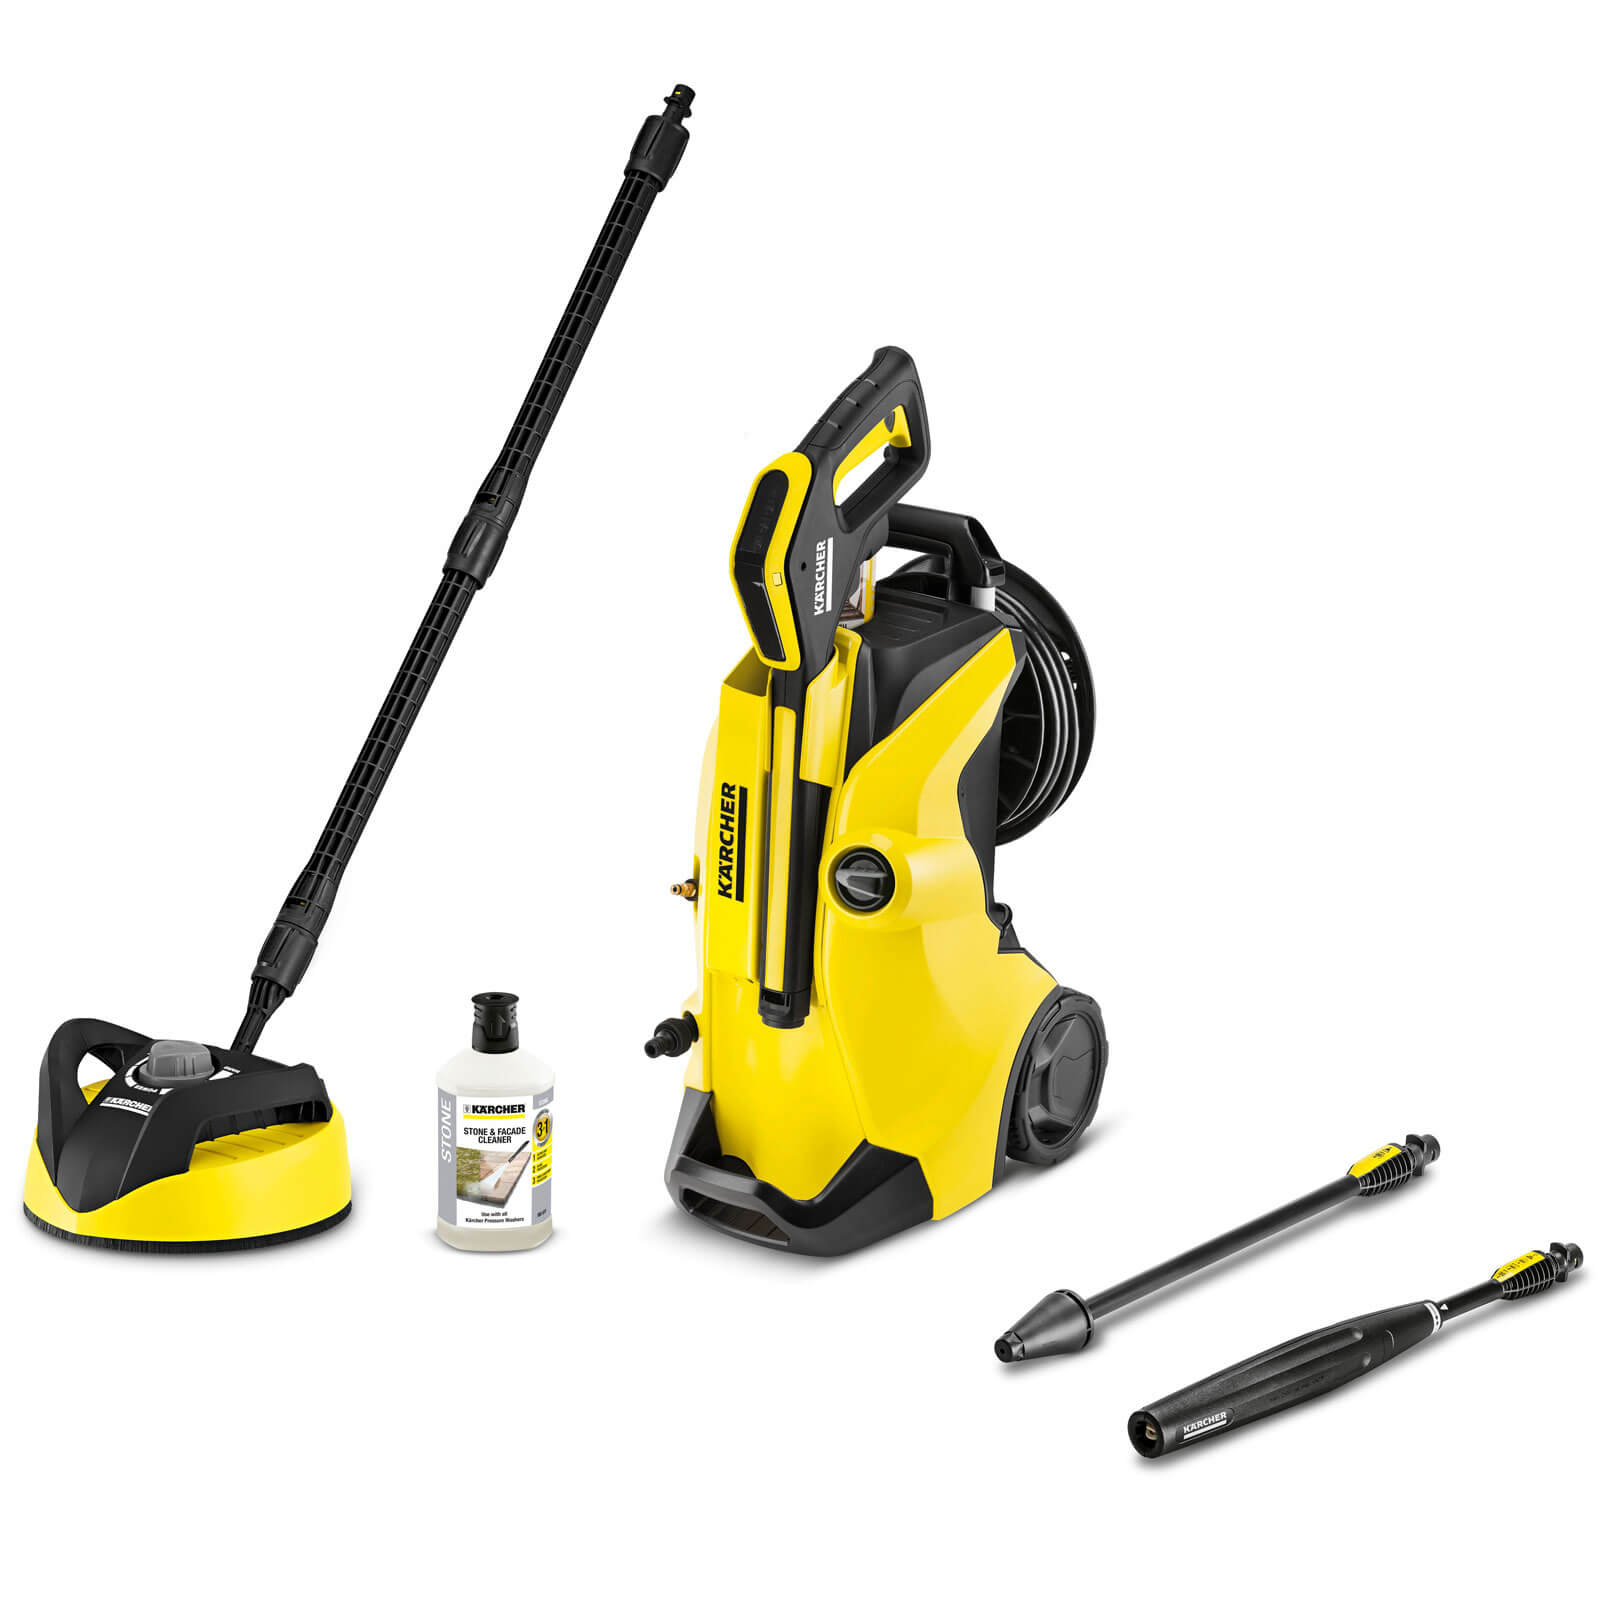 Top 30 cheapest Karcher pressure washer UK prices - best deals on